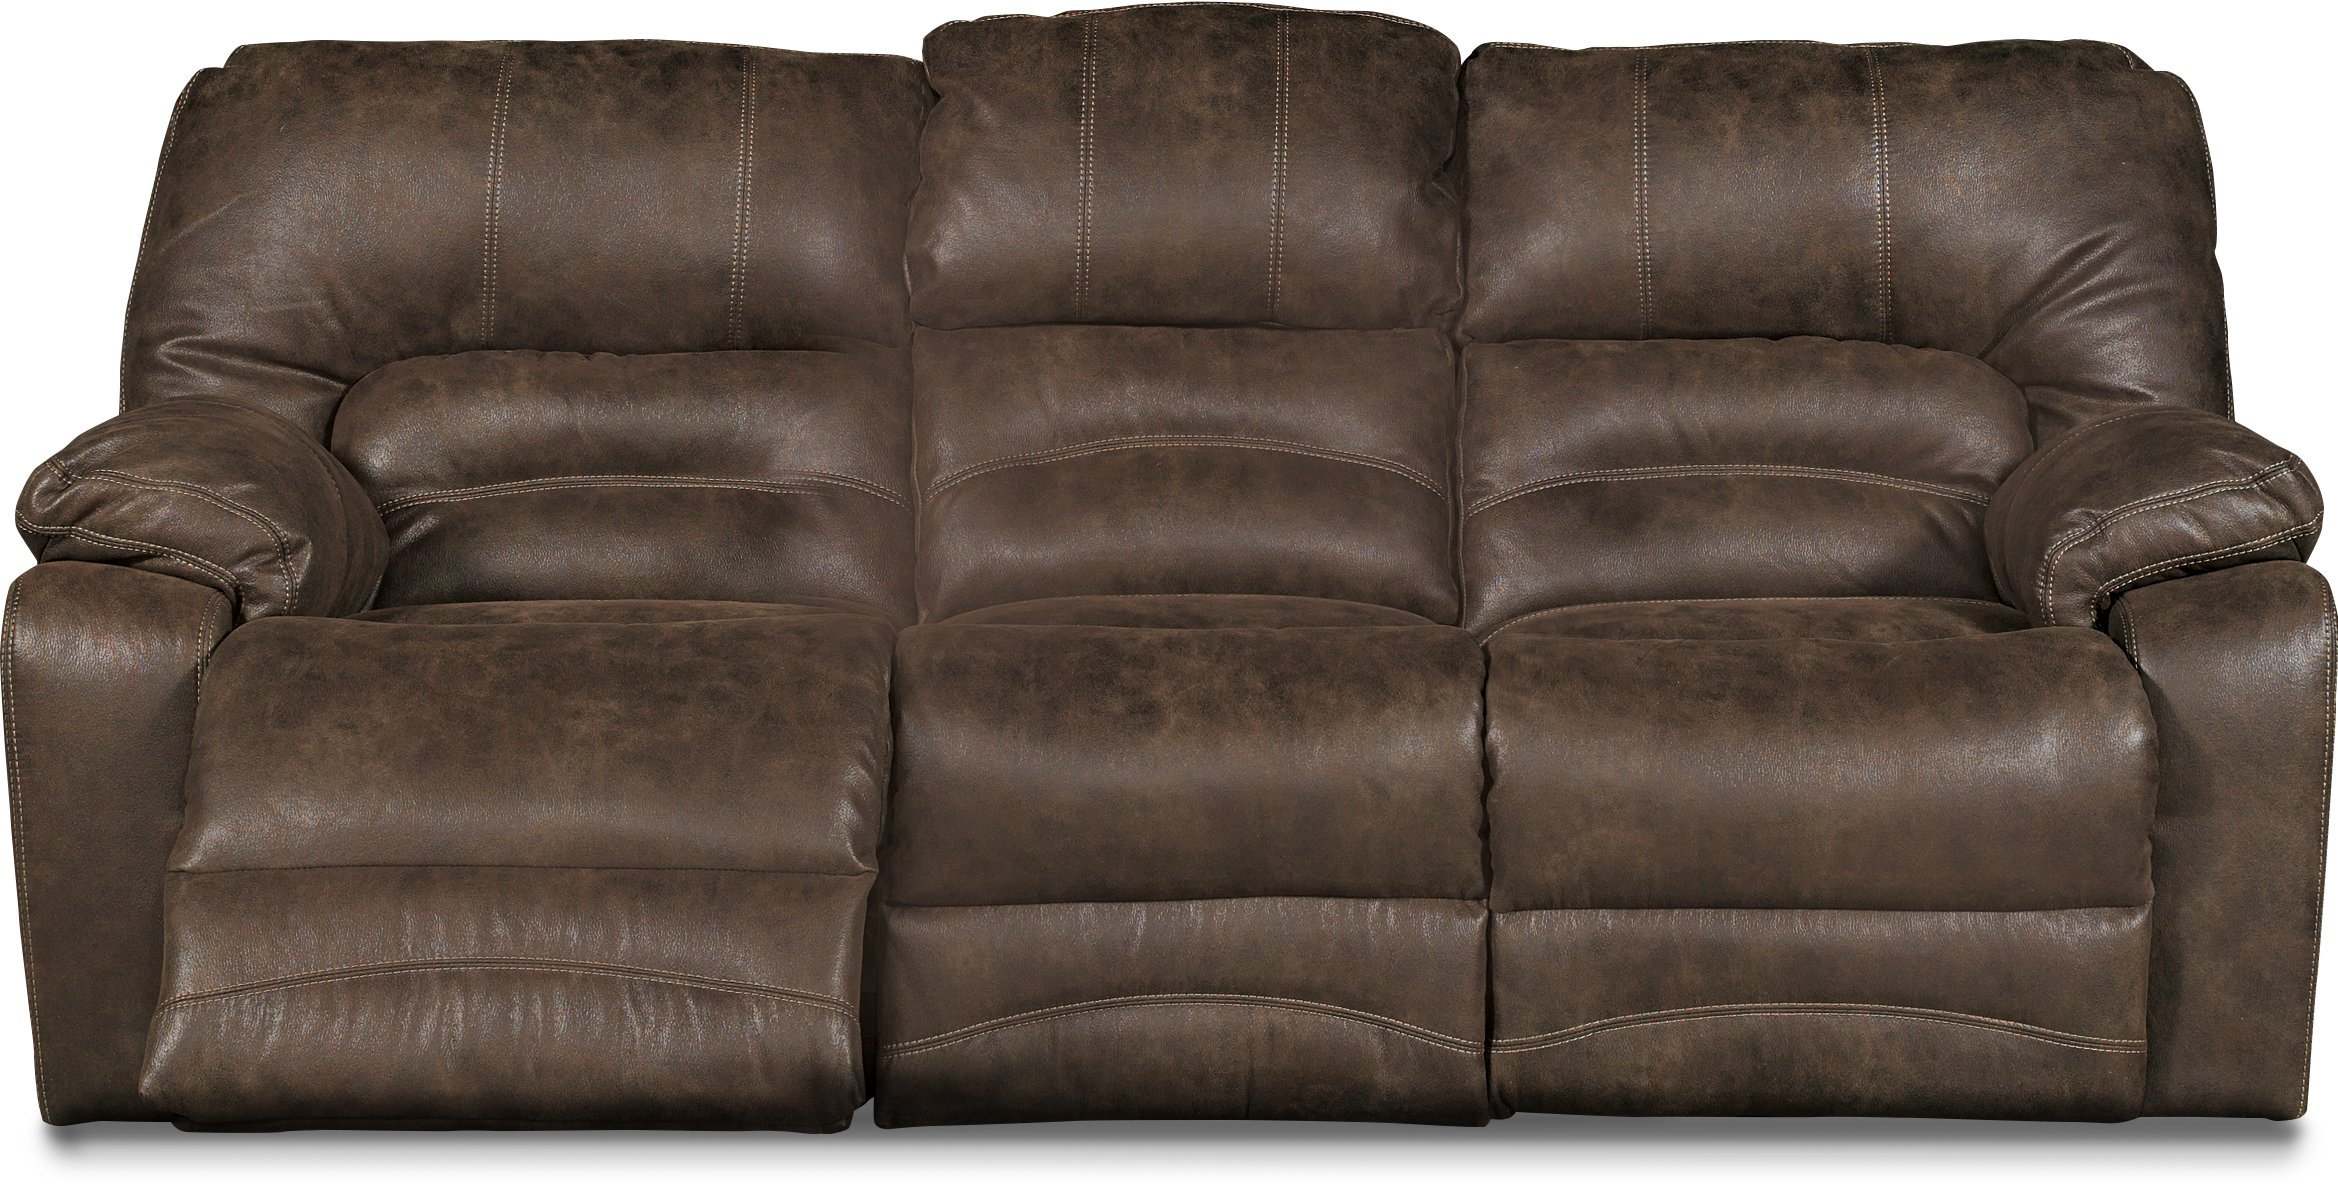 Chocolate Brown Microfiber Power Reclining Sofa   Legacy